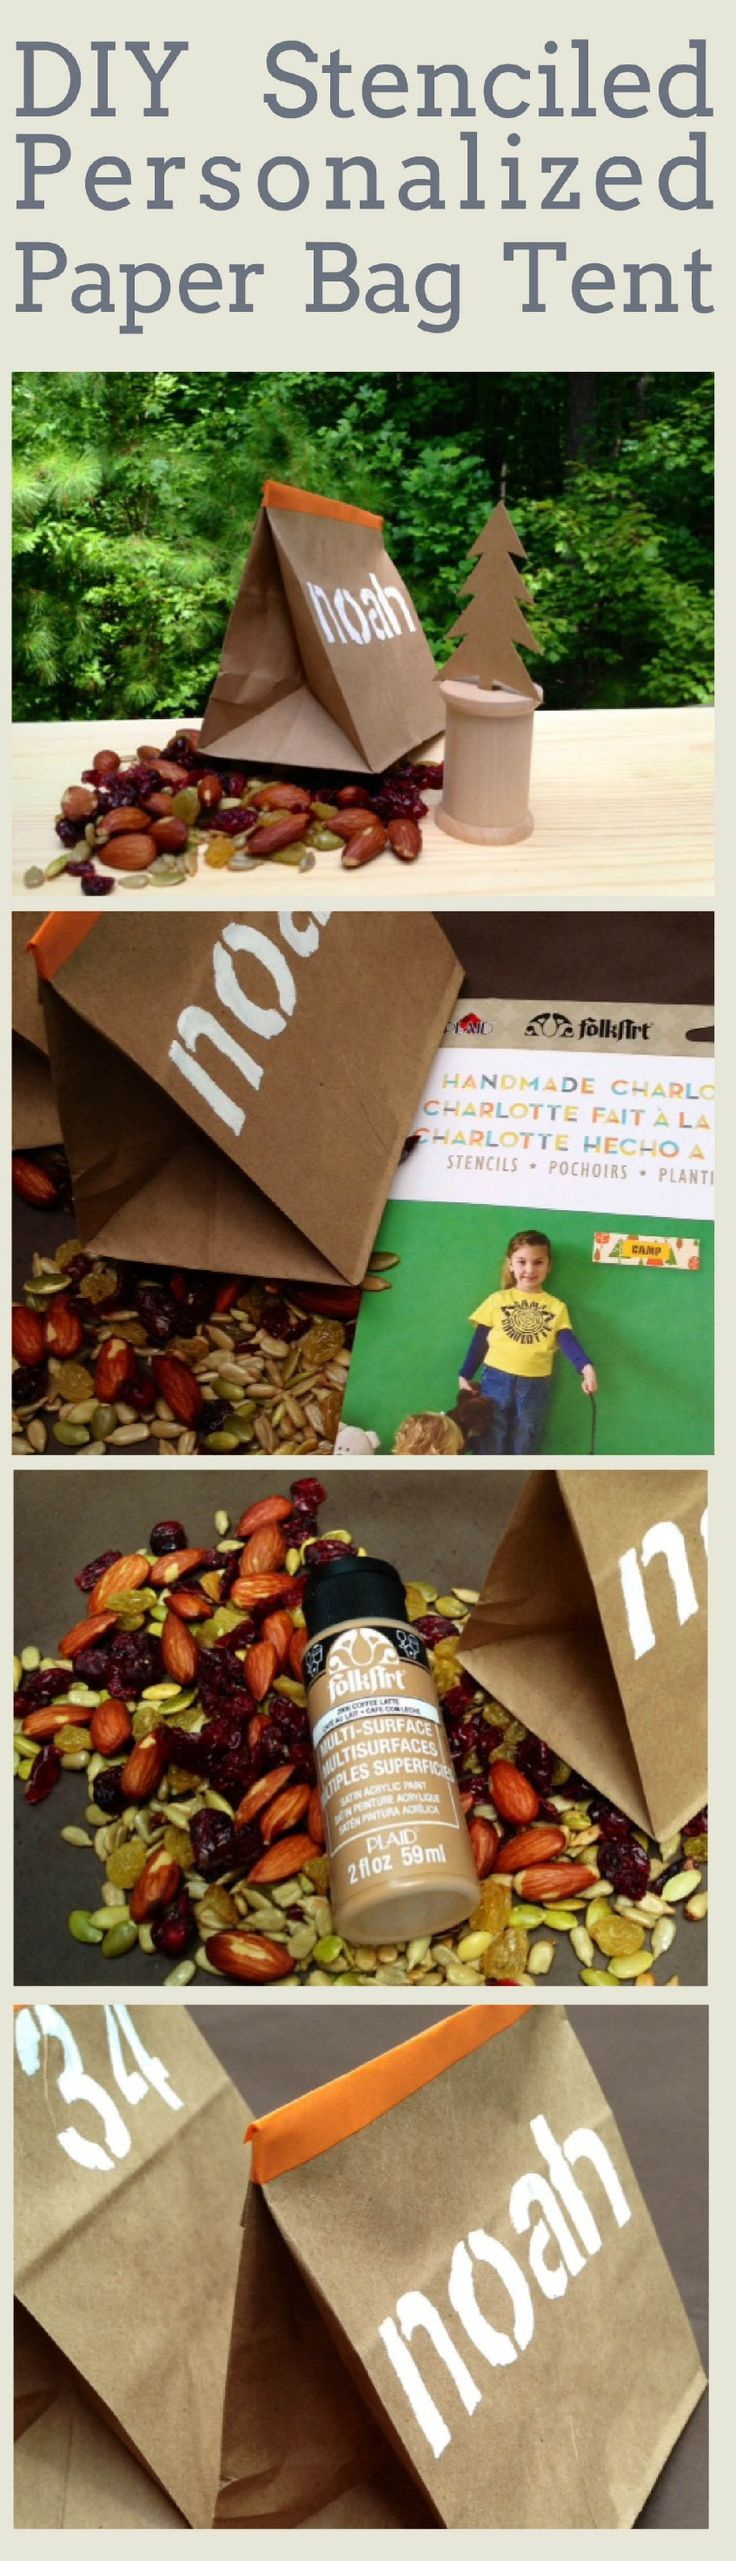 Super Cute Diy Personalized Paper Bag Tent To Craft For